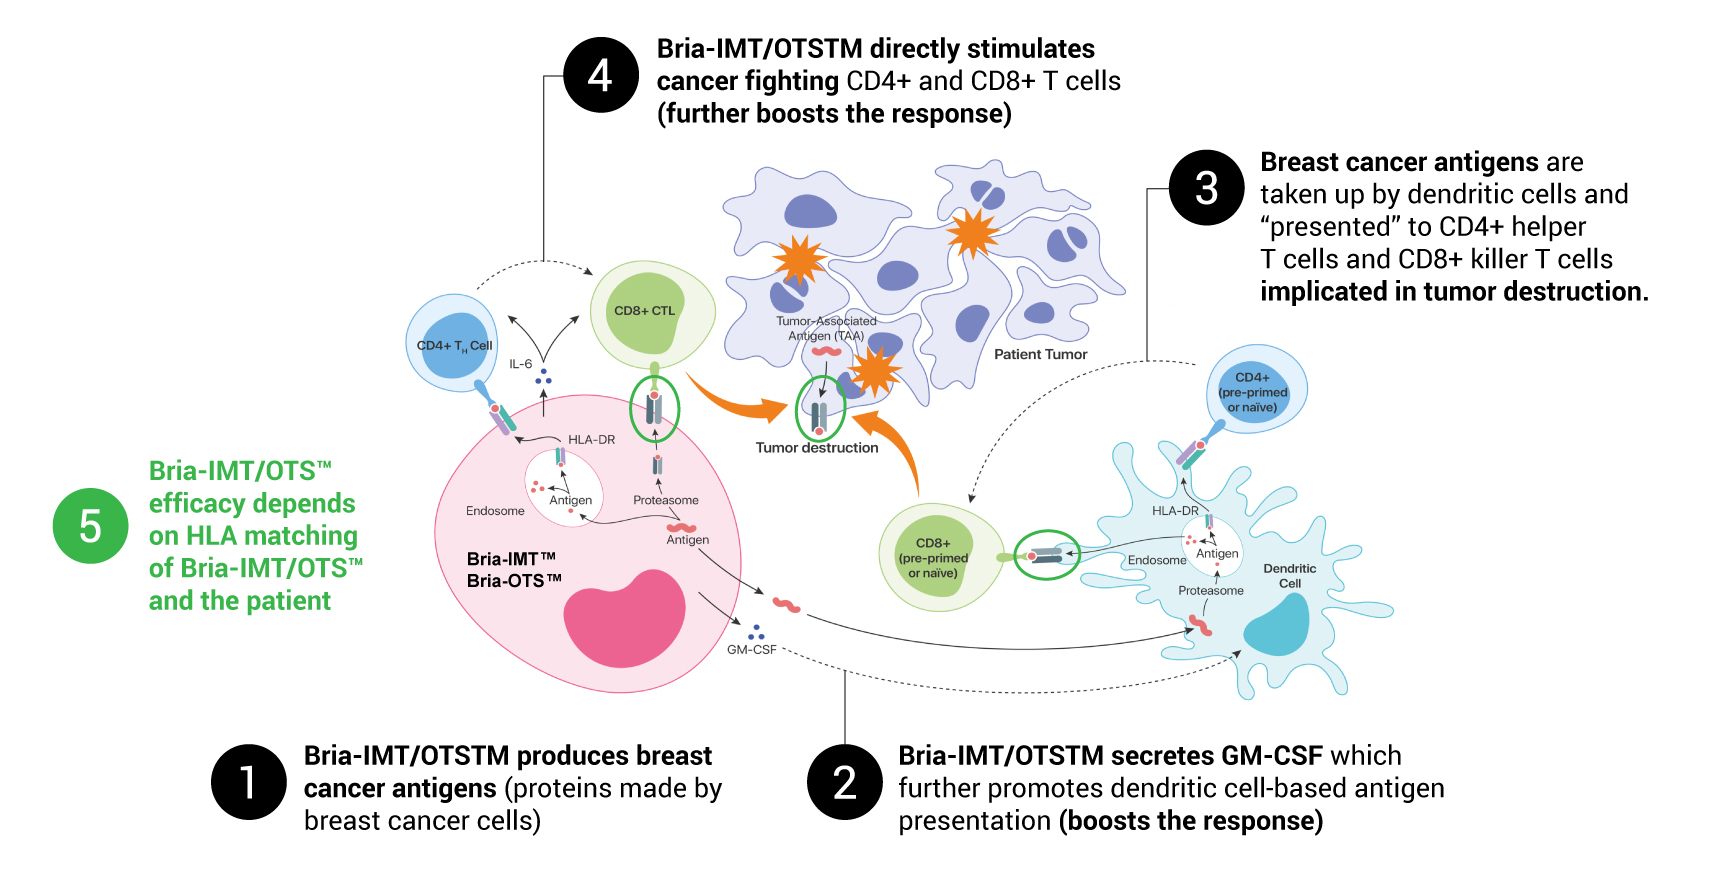 Hypothetical Mechanism of Targeted Immune Activation by Bria-IMT™ & Bria-OTS™ in Advanced Breast Cancer